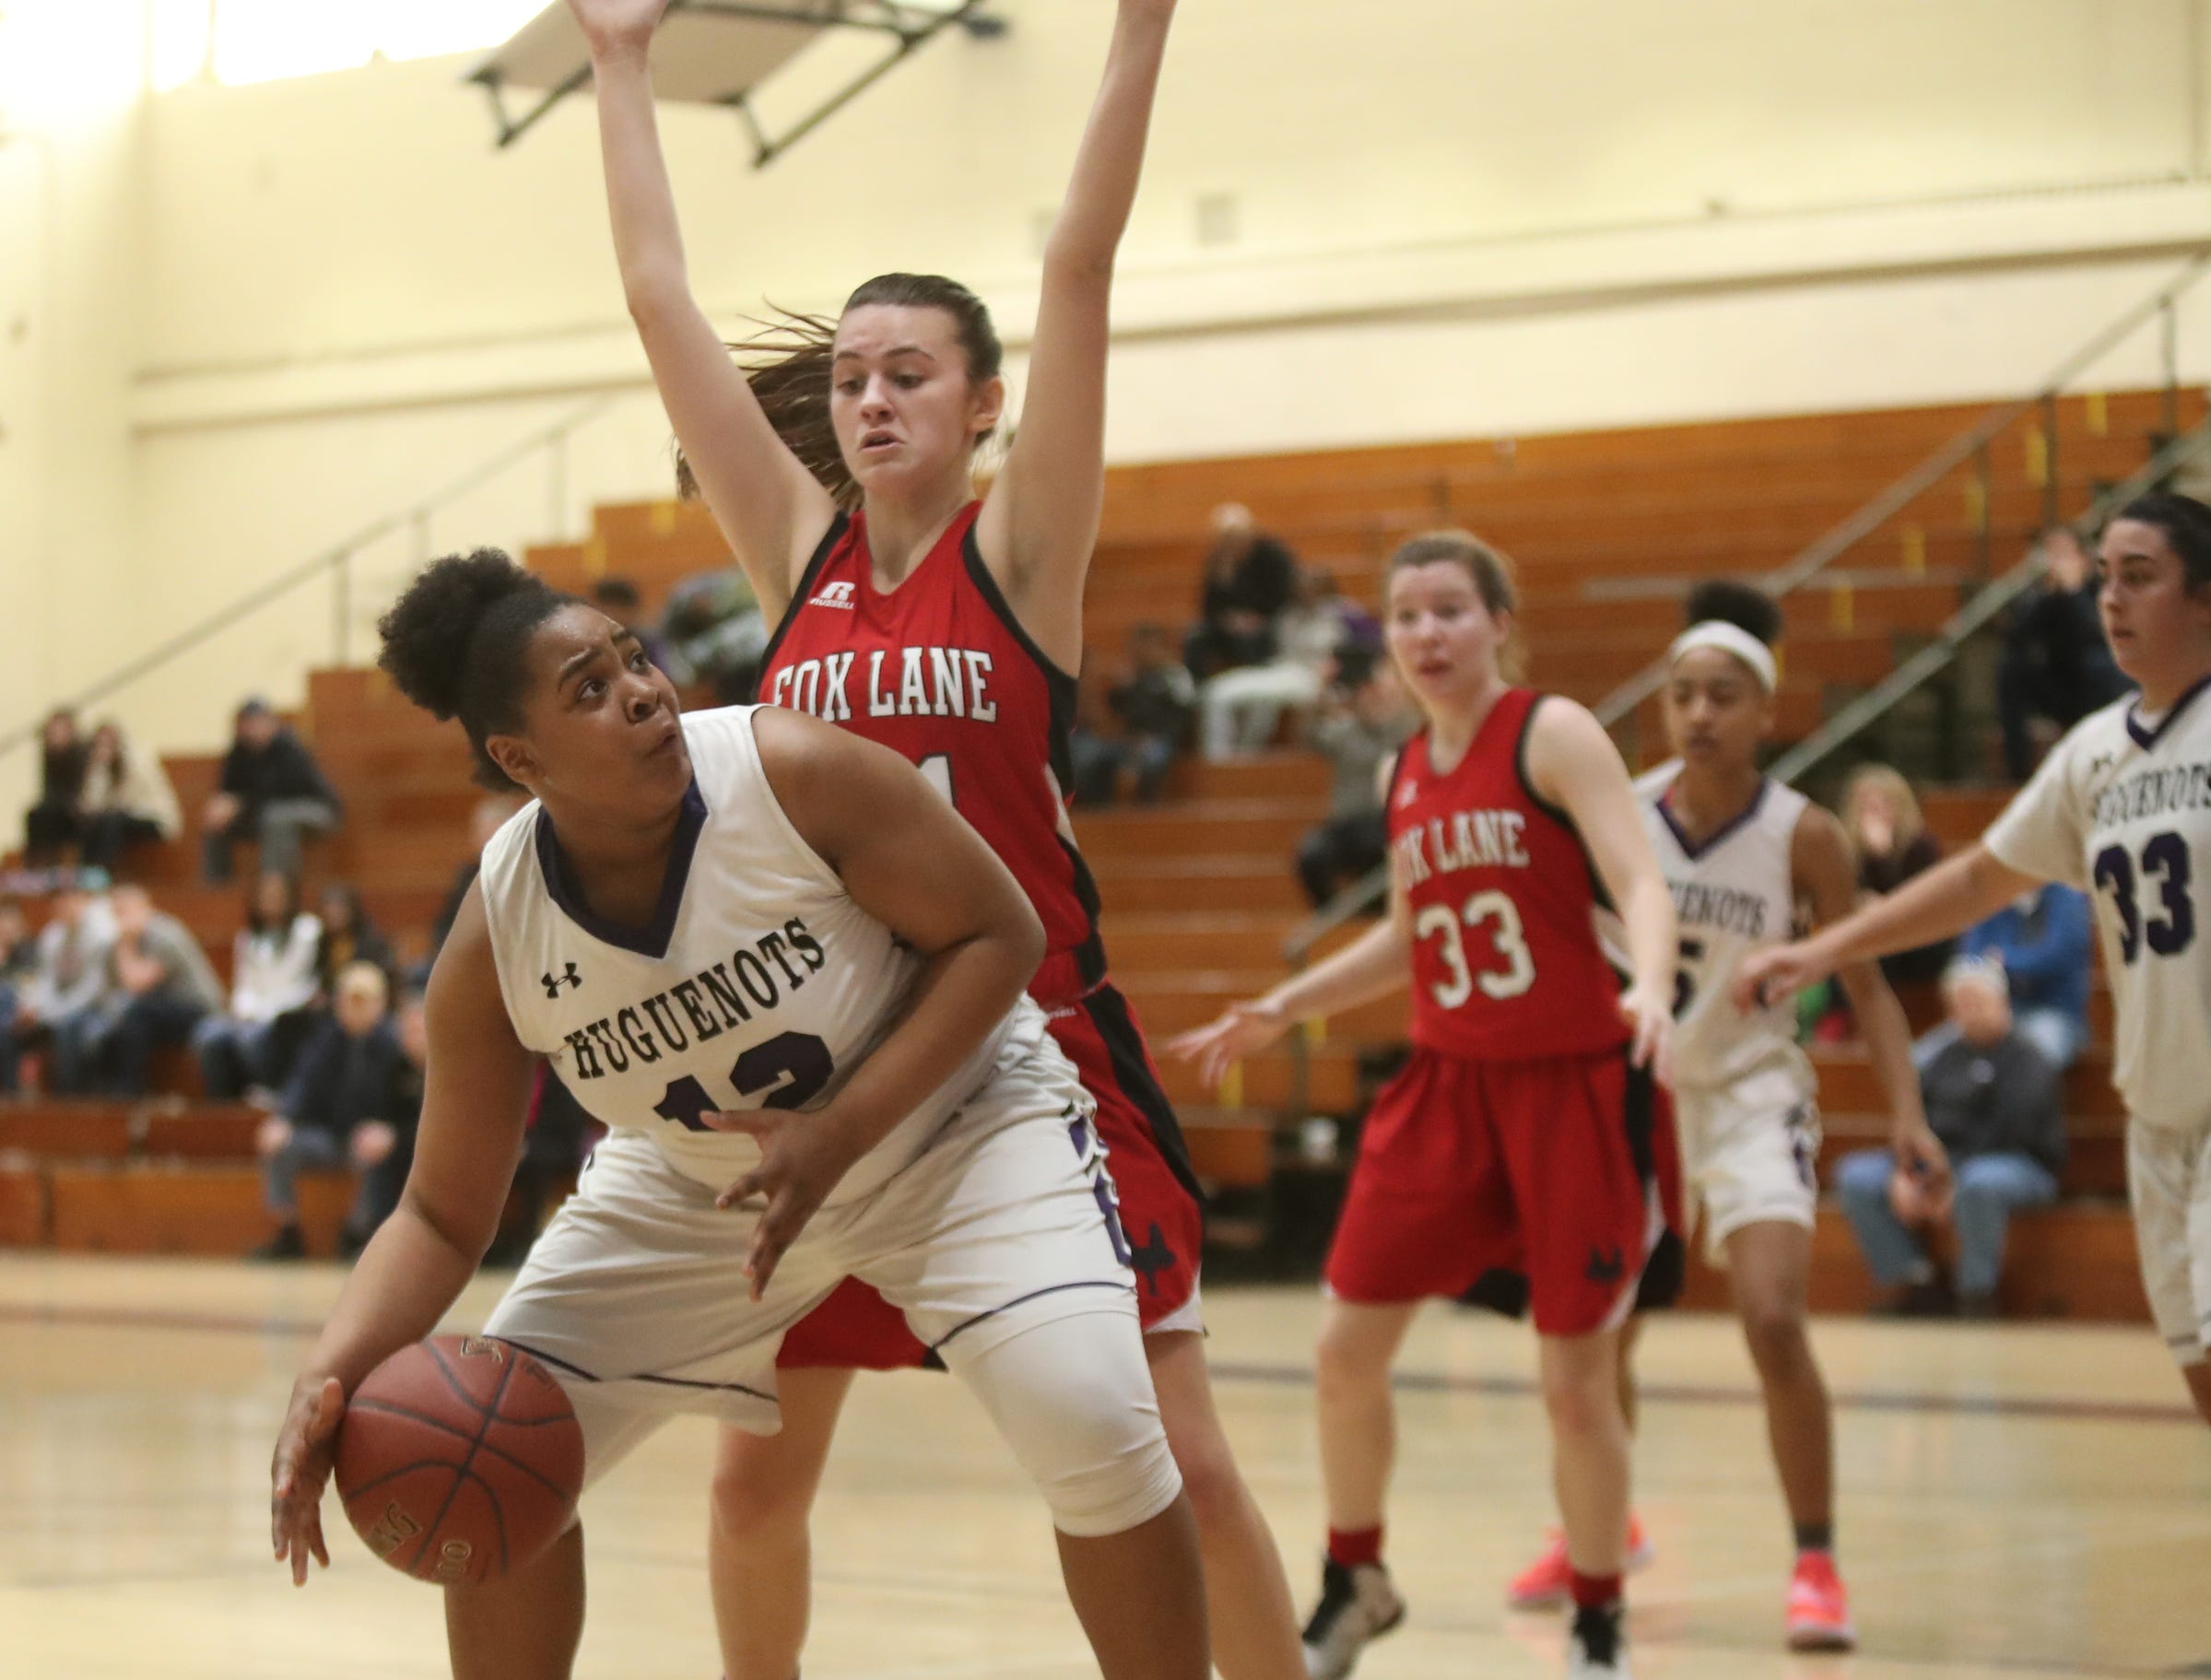 New Rochelle's Makira Bunsie (12) looks to go up strong as Fox Lane's Sofia Zinzi (21) defends in the class AA girls basketball outbracket game at New Rochelle High School in New Rochelle on Saturday, February 16, 2019.